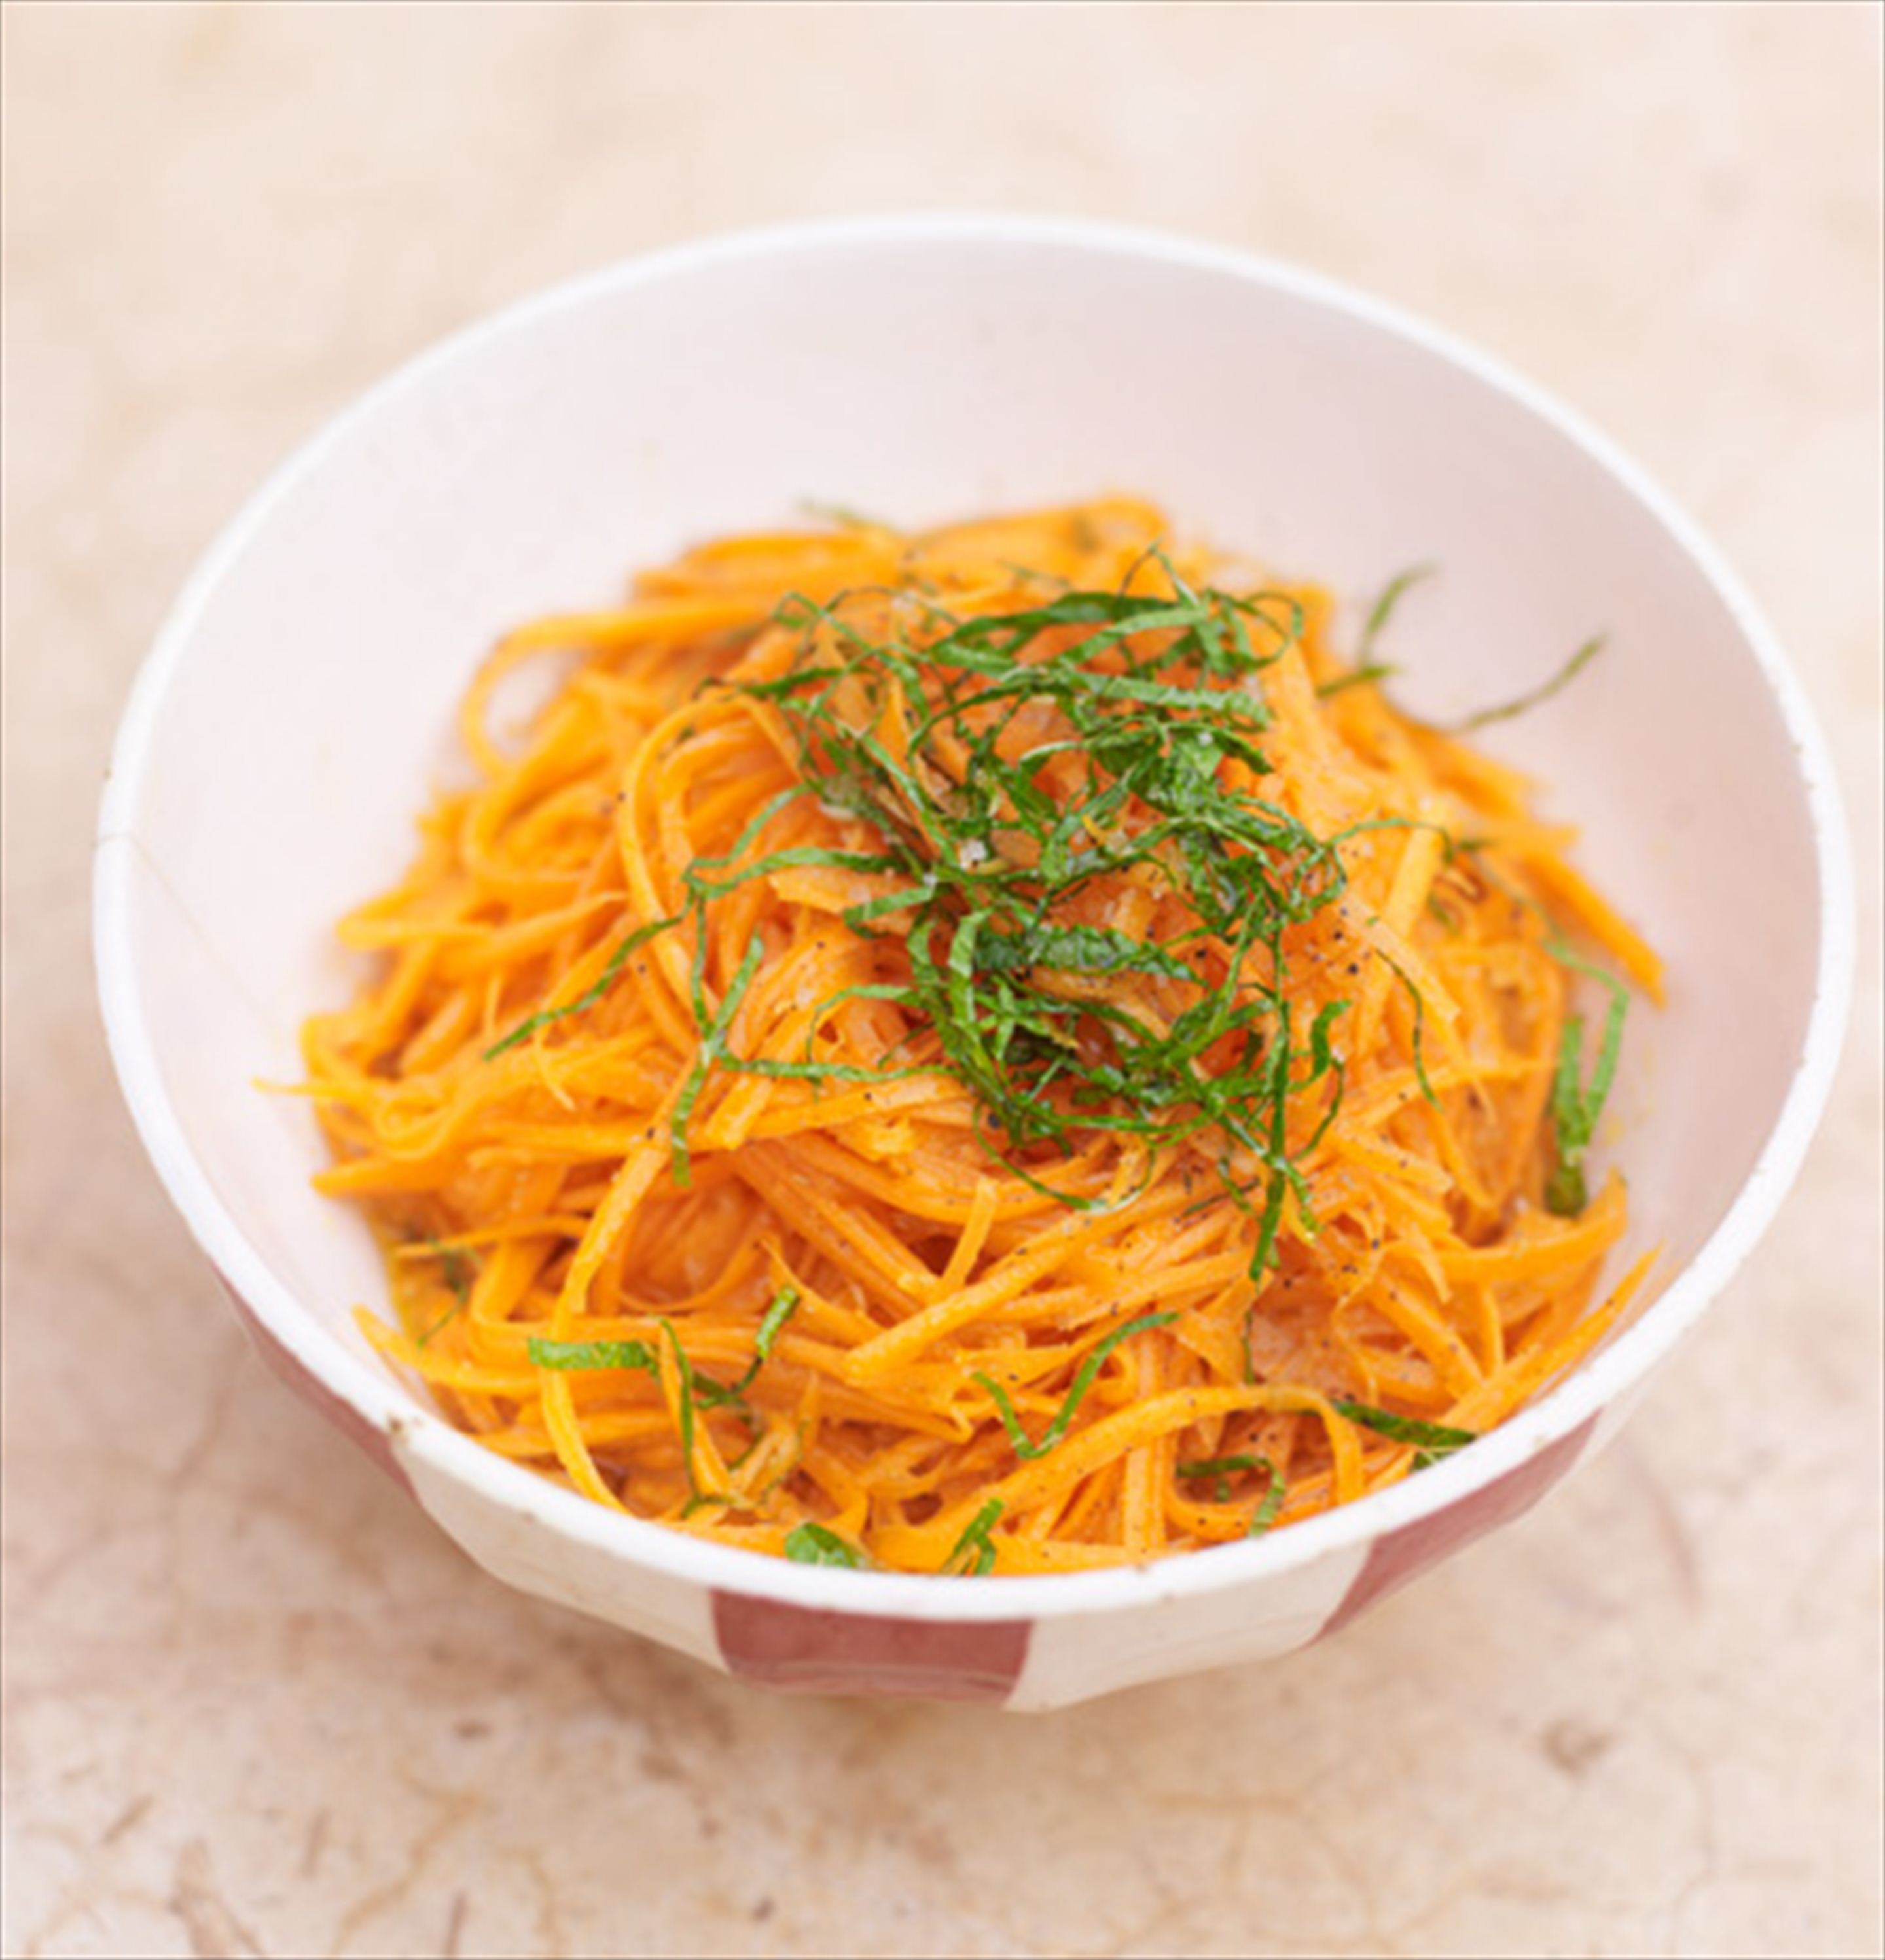 Grated carrot & orange salad